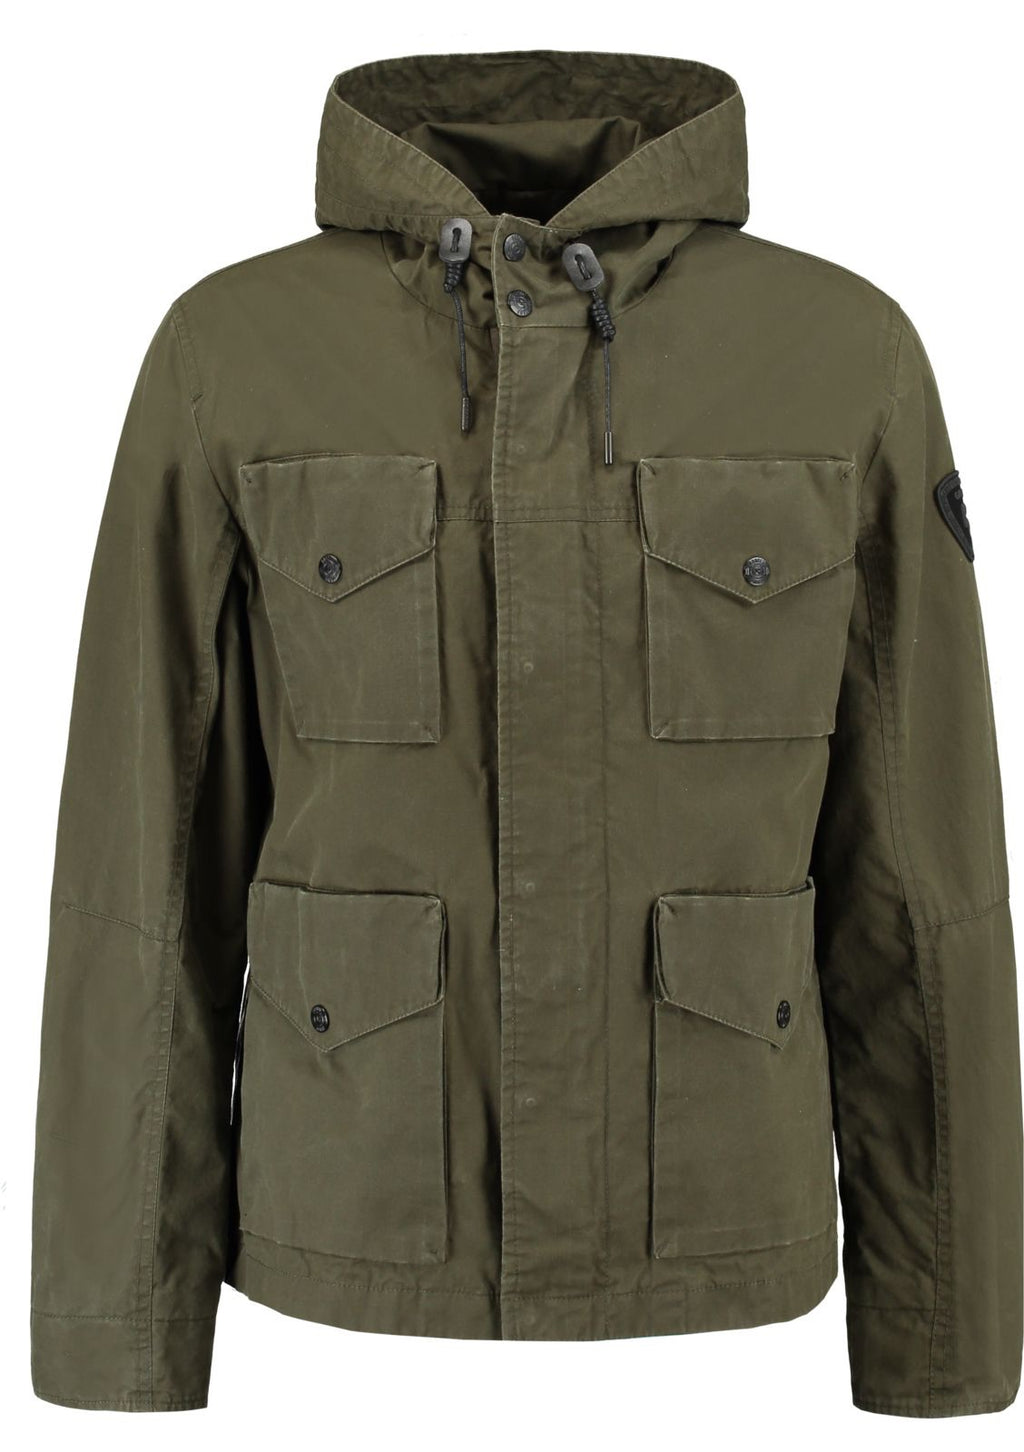 Garcia Army Jacket - LAST SIZES!!